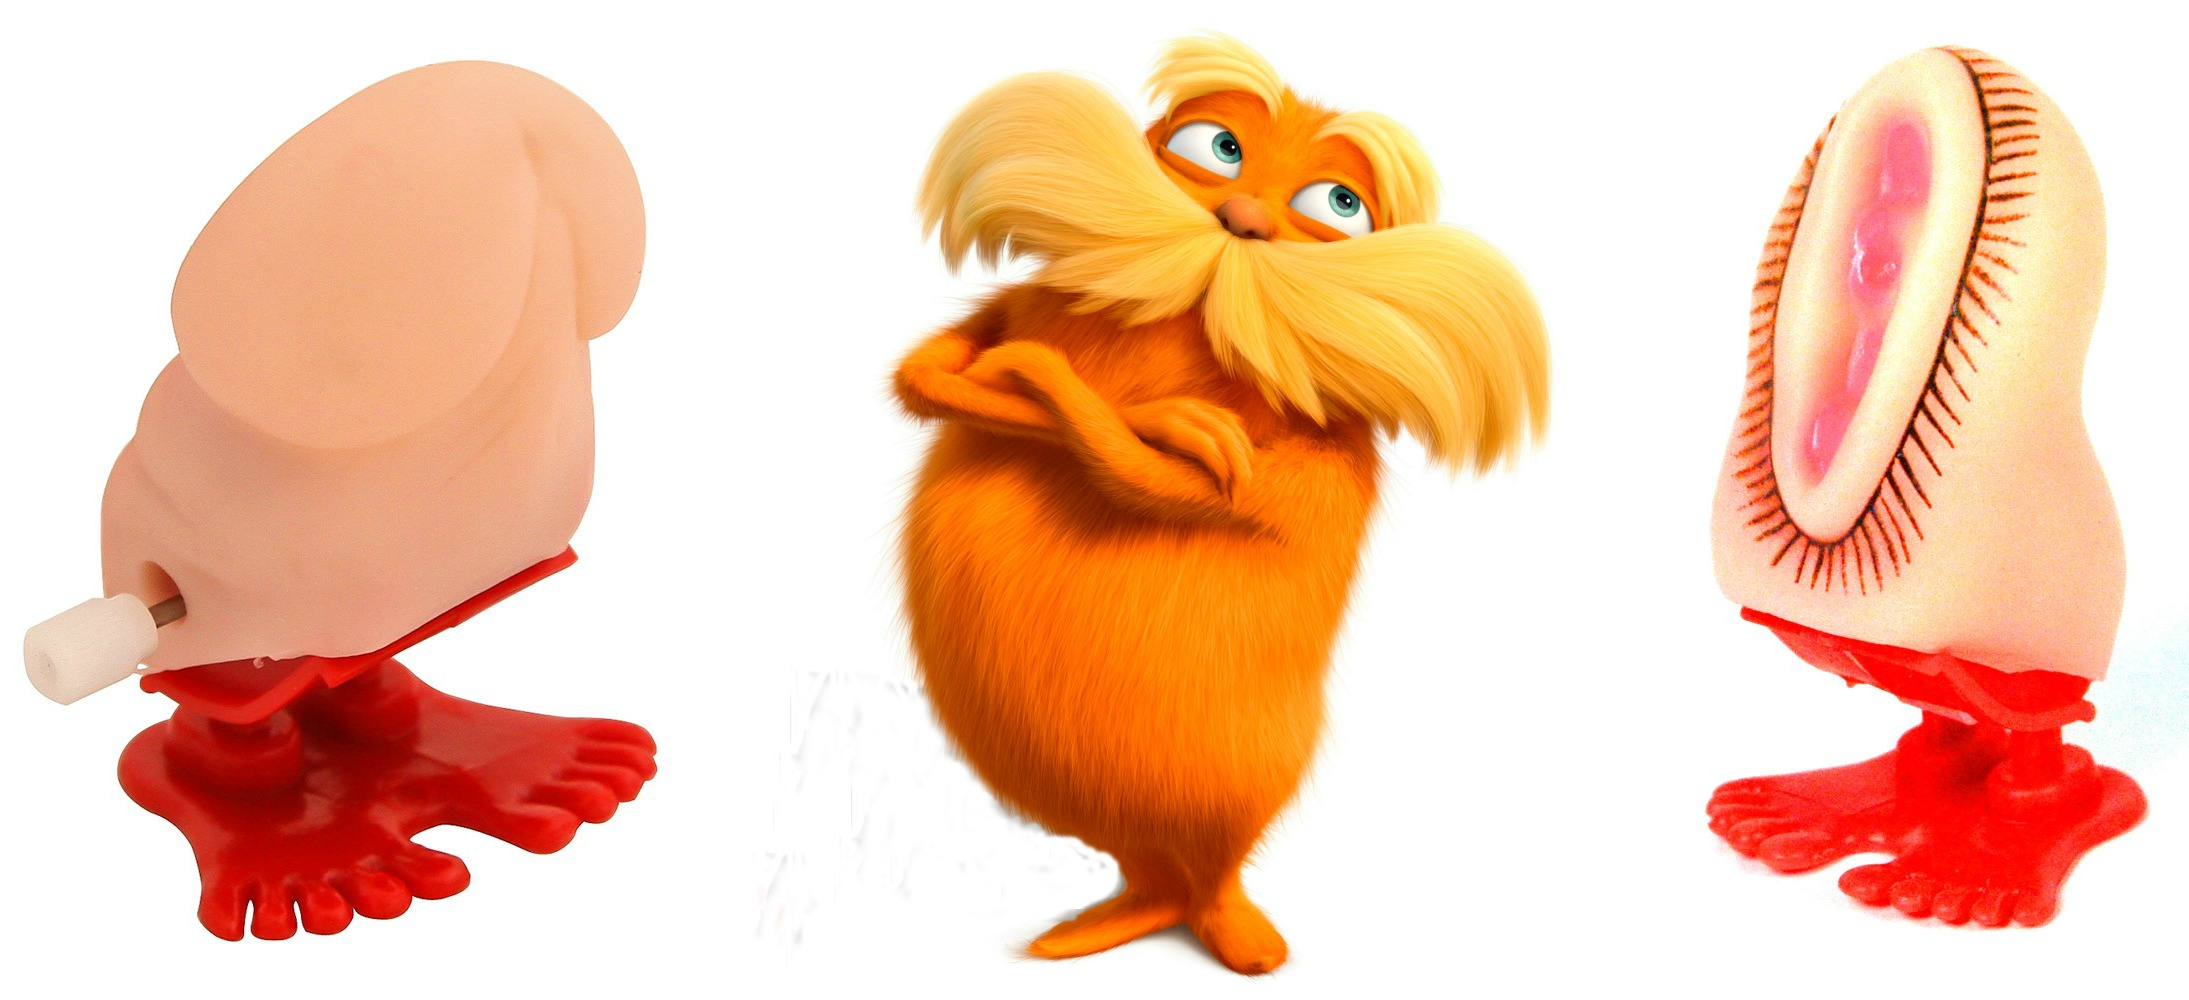 Am the lorax and speak for parts peaches clip art